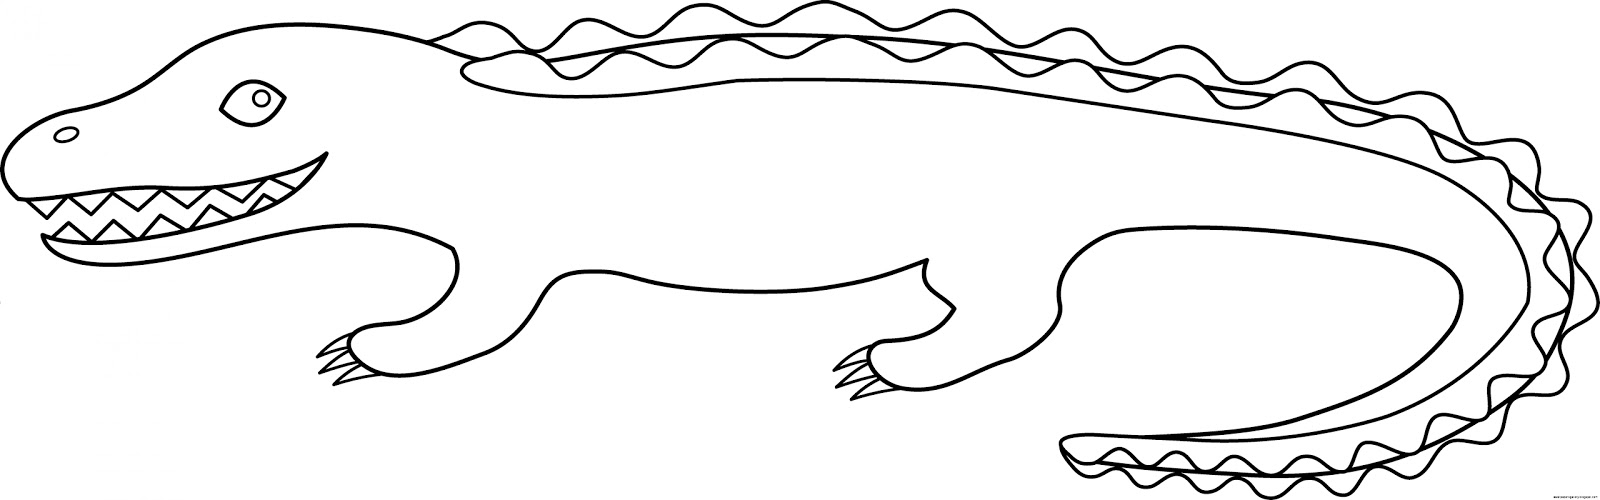 outline picture of crocodile alligator drawing wallpapers gallery outline crocodile of picture